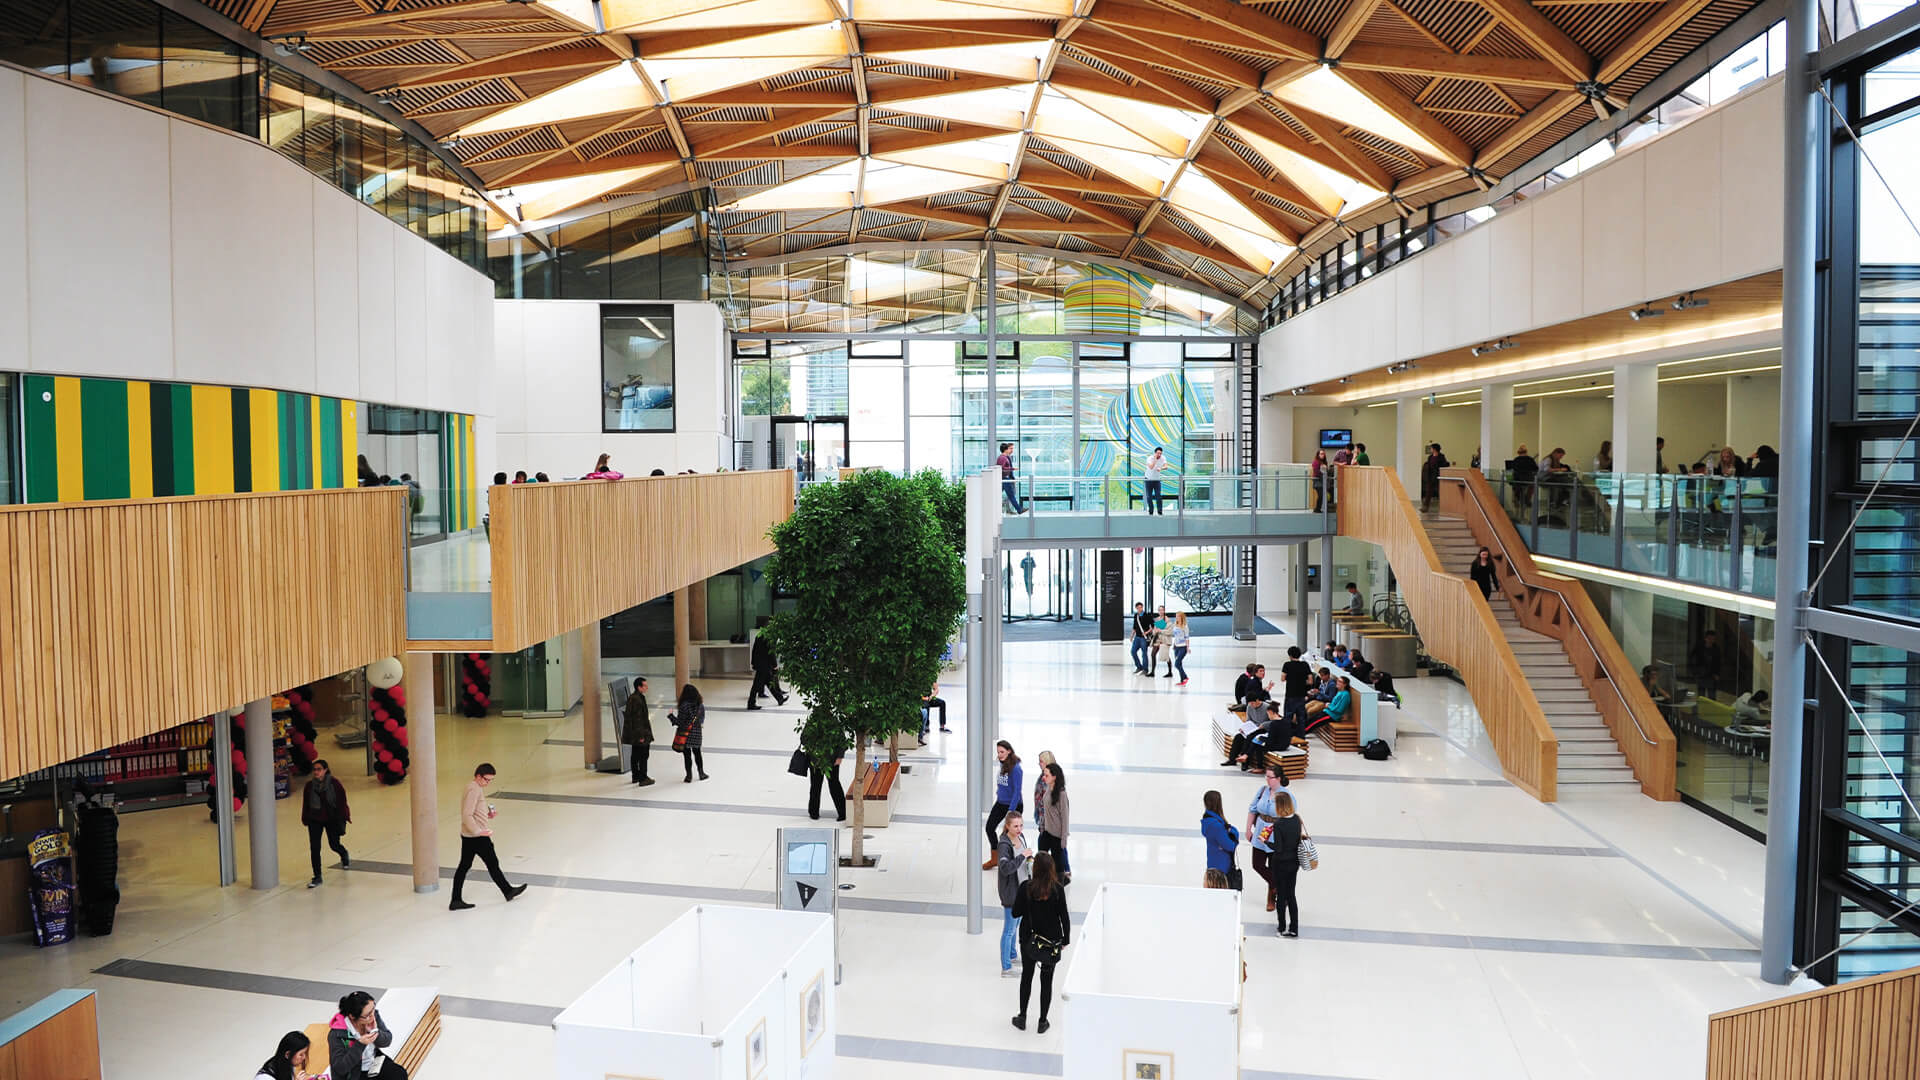 The Forum is a stunning £48 million centrepiece at the heart of the University of Exeter campus